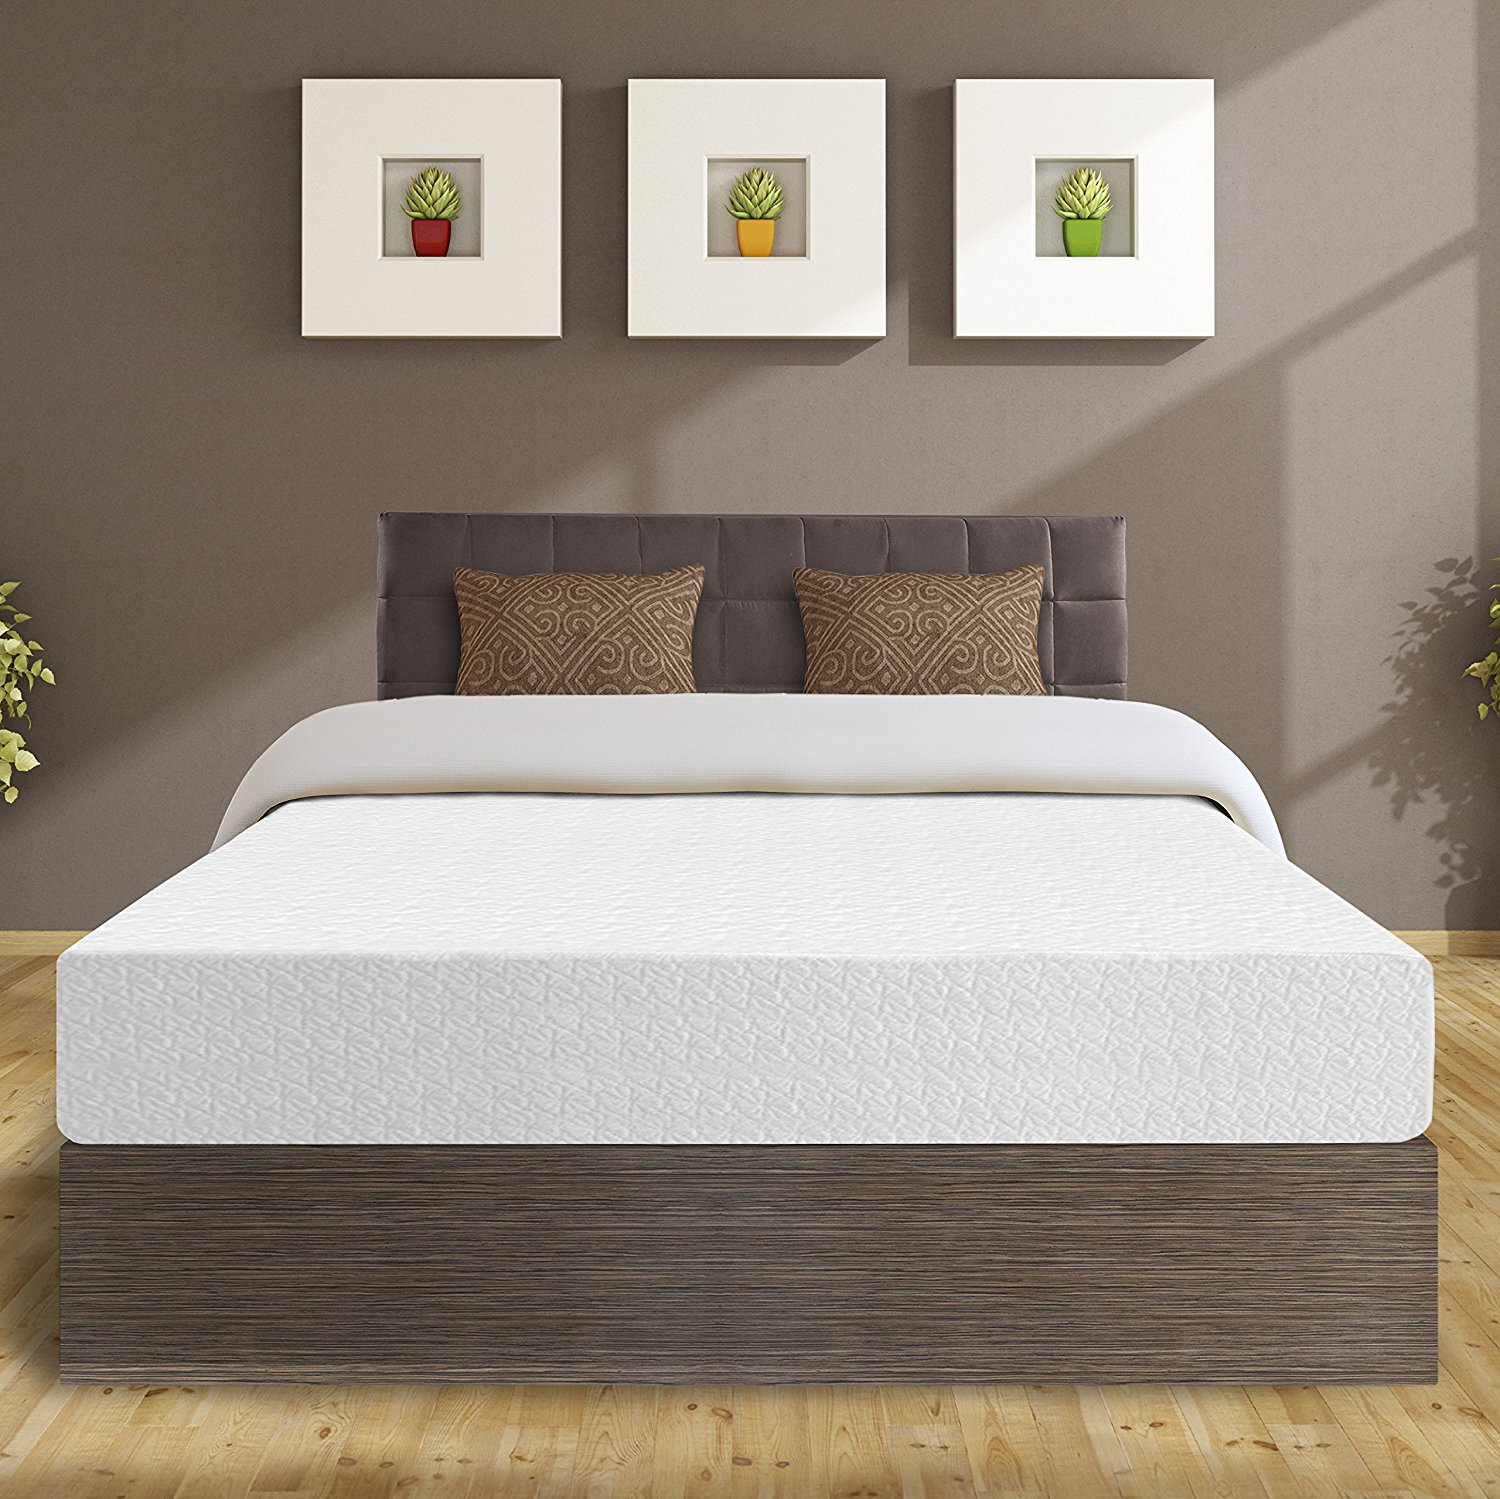 What Is The Best Rated Bed Mattress